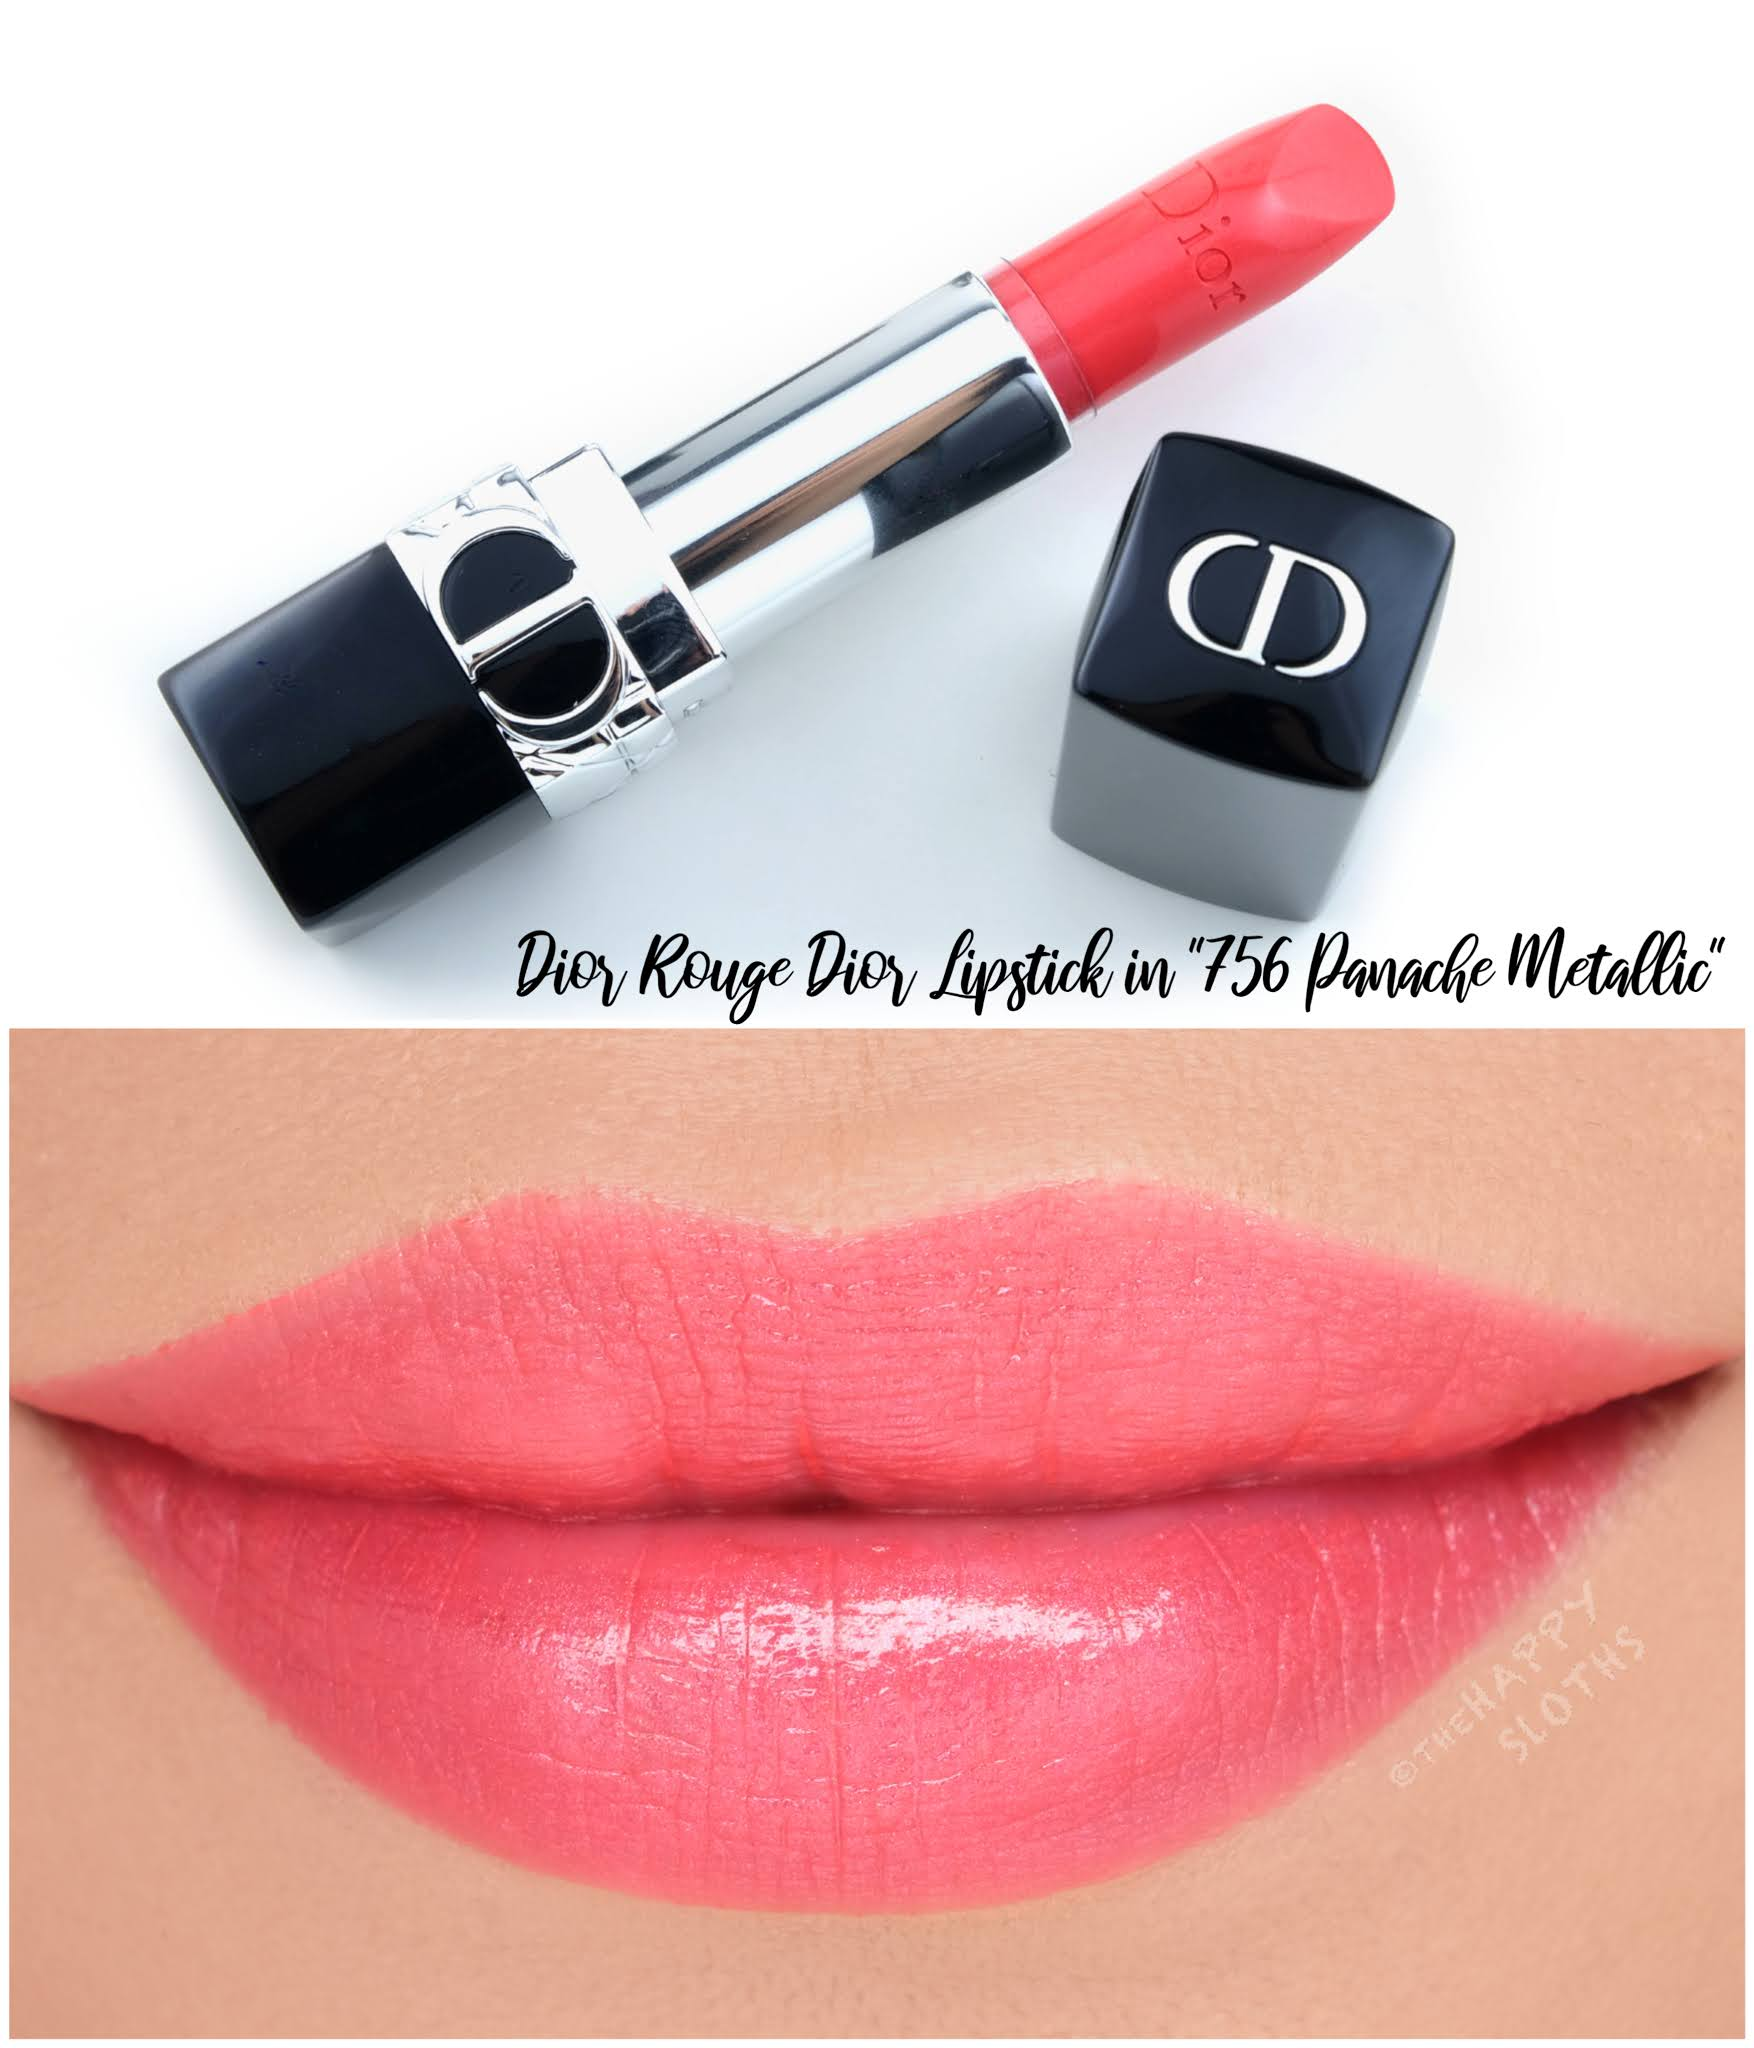 Dior | *NEW* Rouge Dior Refillable Lipstick in 756 Panache Metallic: Review and Swatches